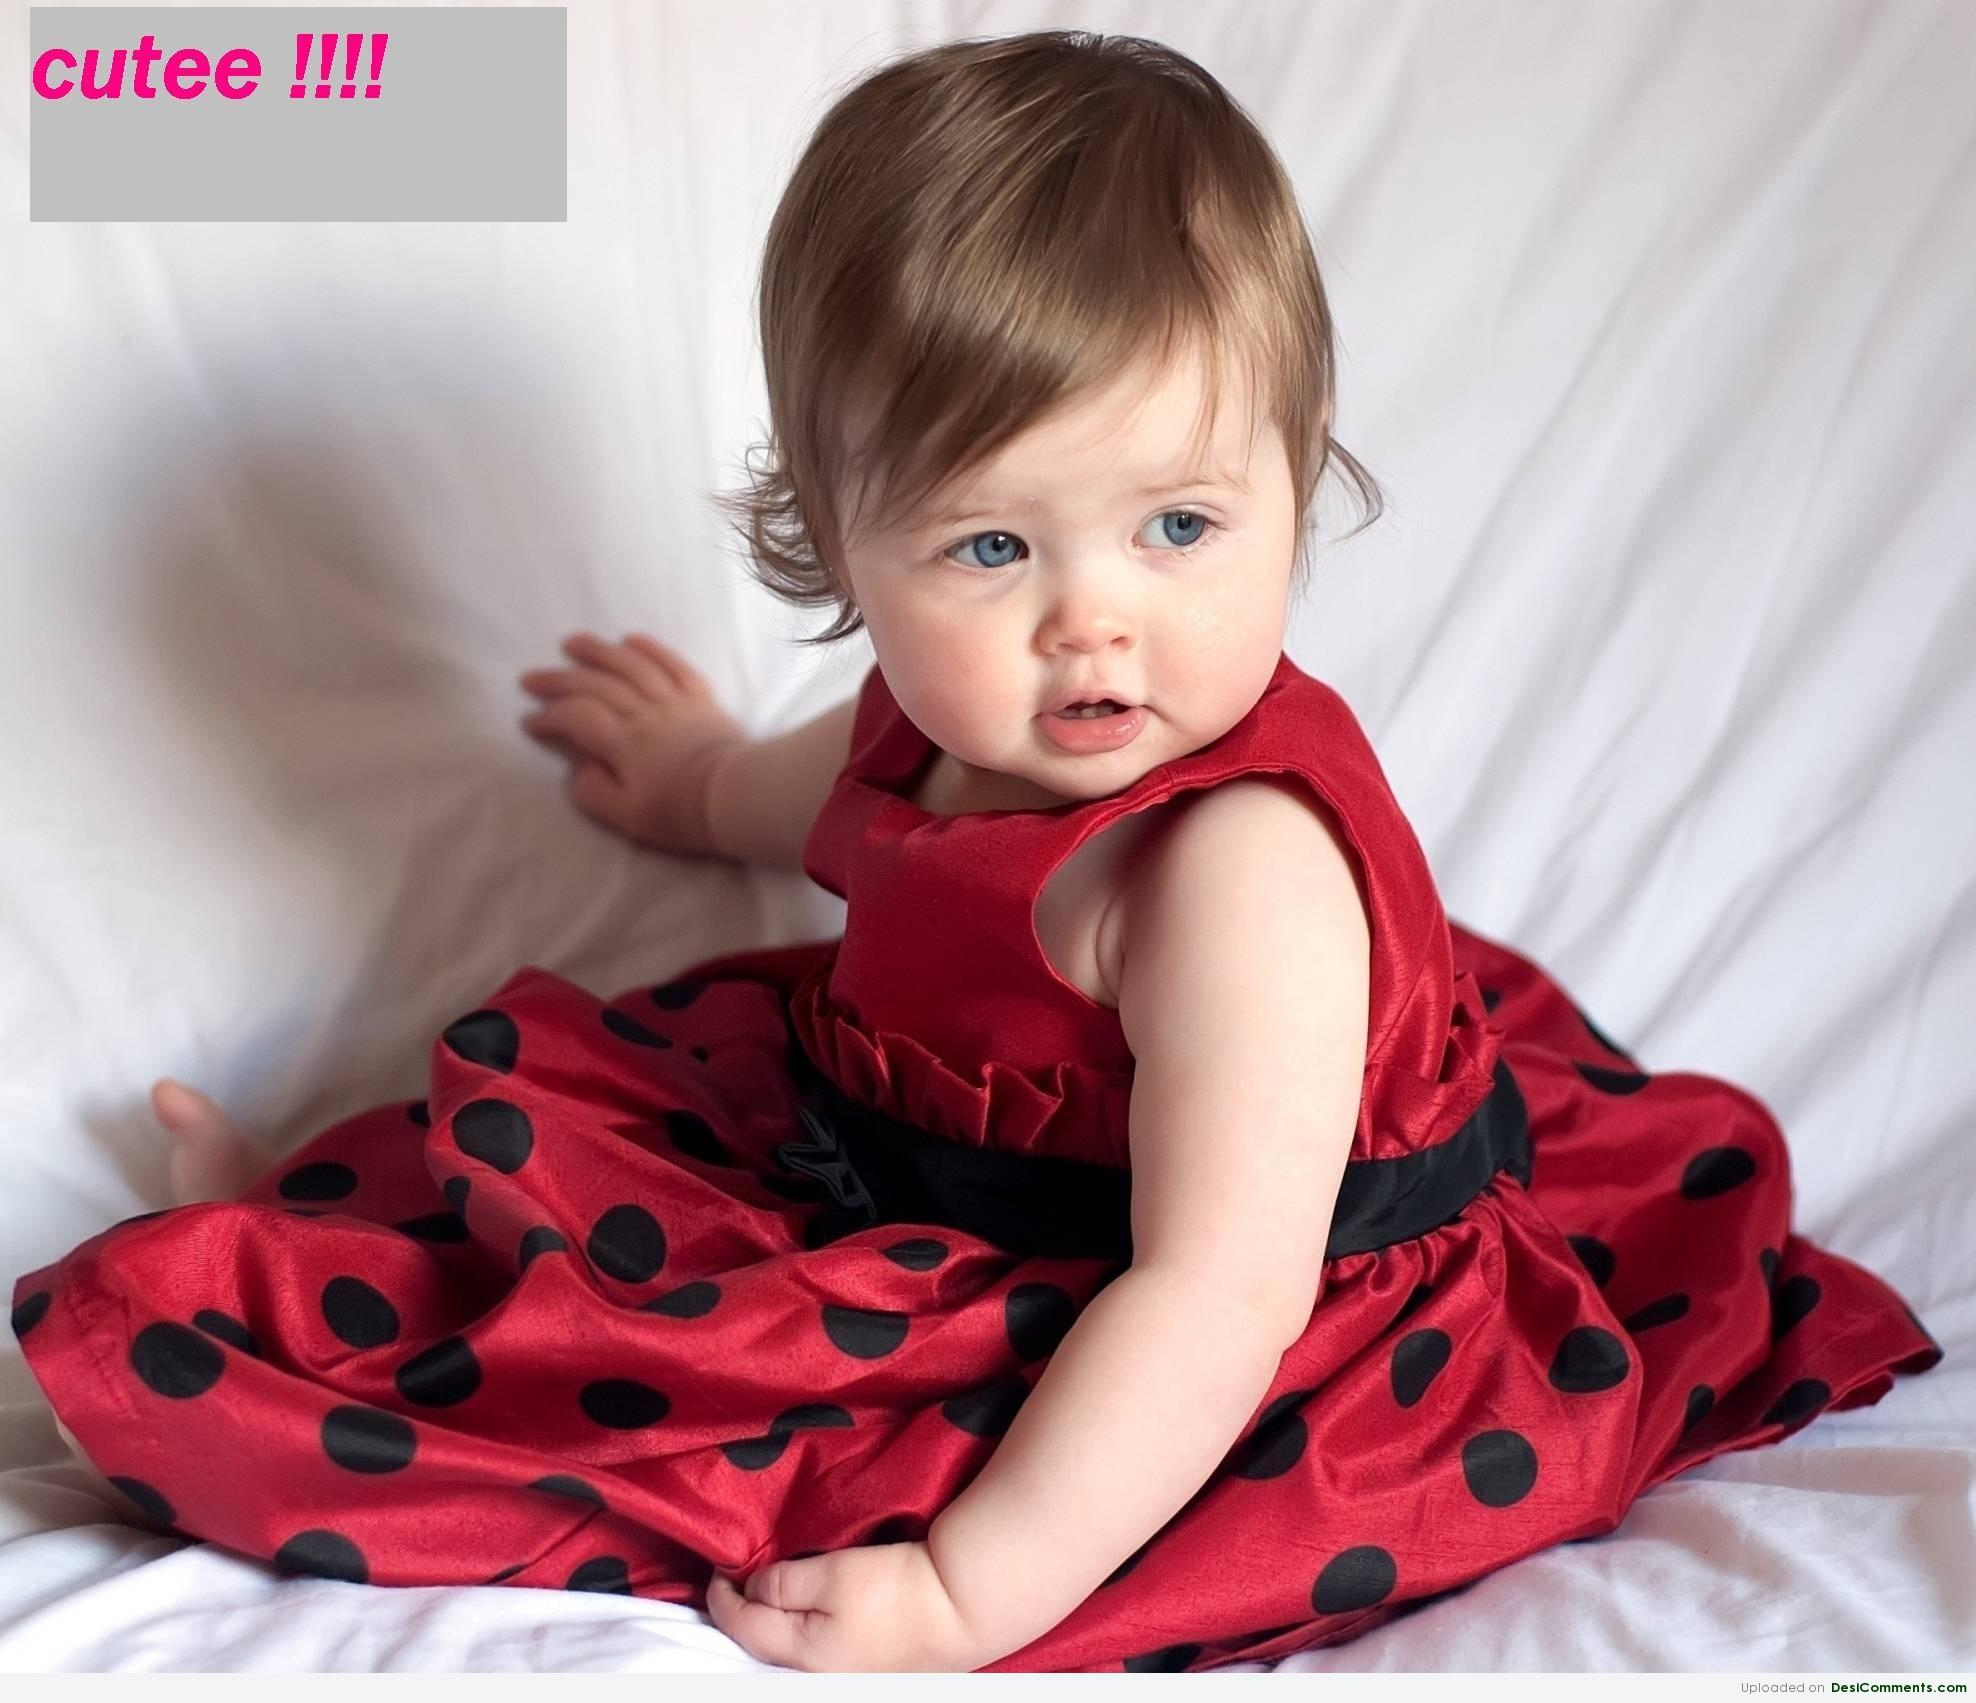 cute pictures, images, graphics - page 4